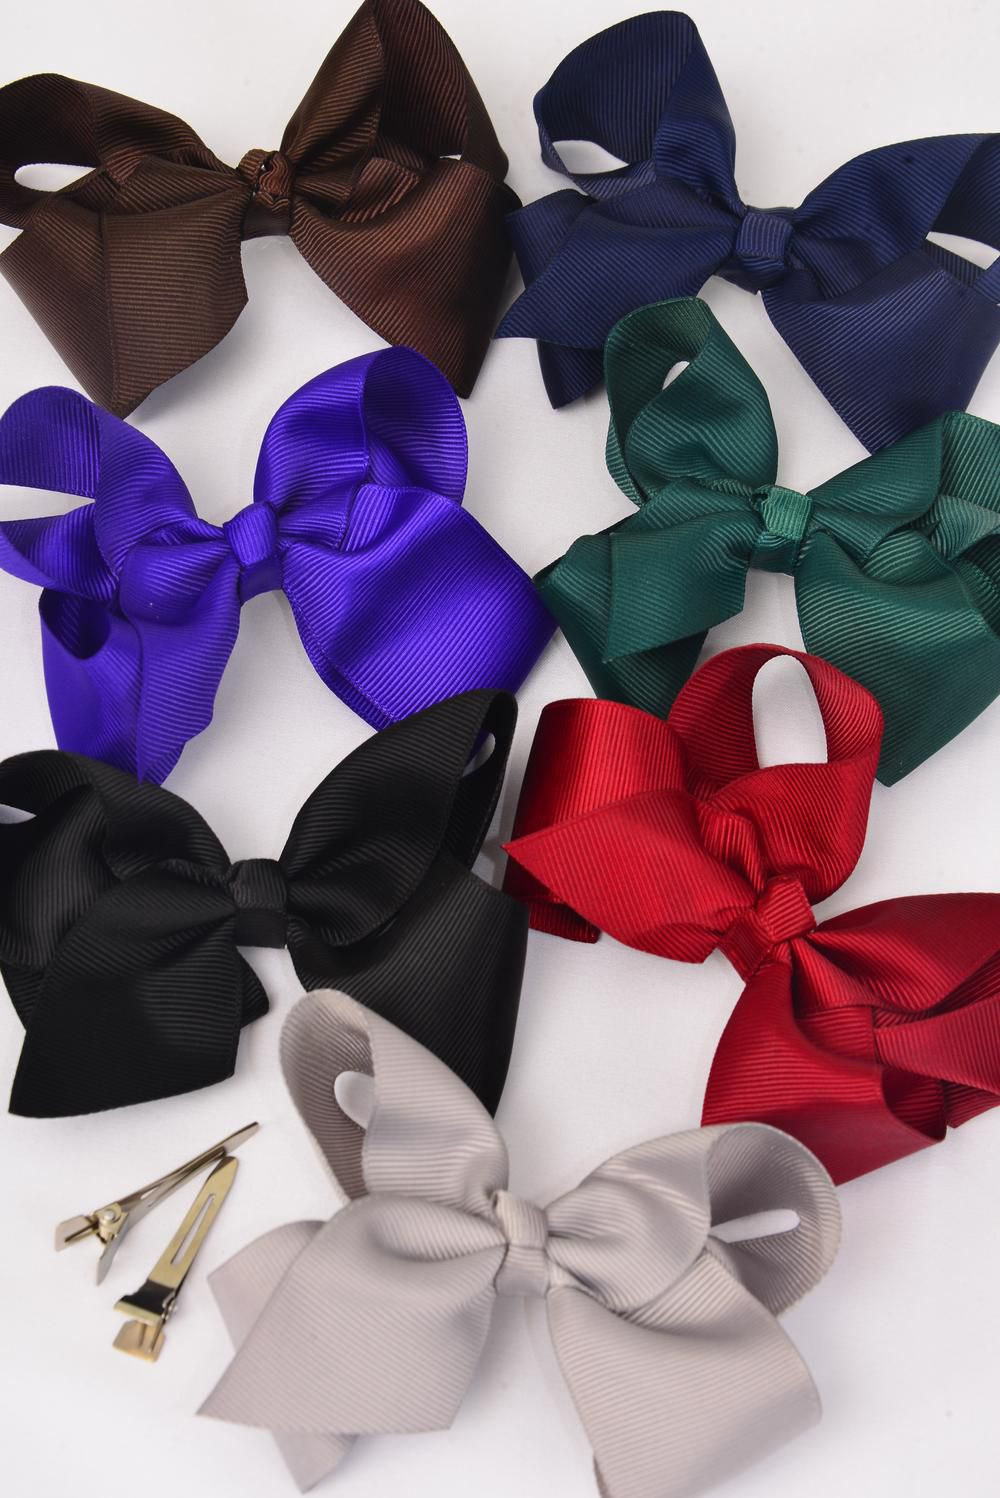 "Hair Bow Large 4""x 3"" Wide Dark Multi Alligator Grosgrain Fabric Bow-tie/DZ **Dark Multi** Alligator Clip, Size-4""x 3"" Wide,2 Black,2 Brown,2 Purple,2 Burgundy,2 Navy,1 Hunter Green,1 Gray,7 Color Asst,Clip Strip & UPC Code."